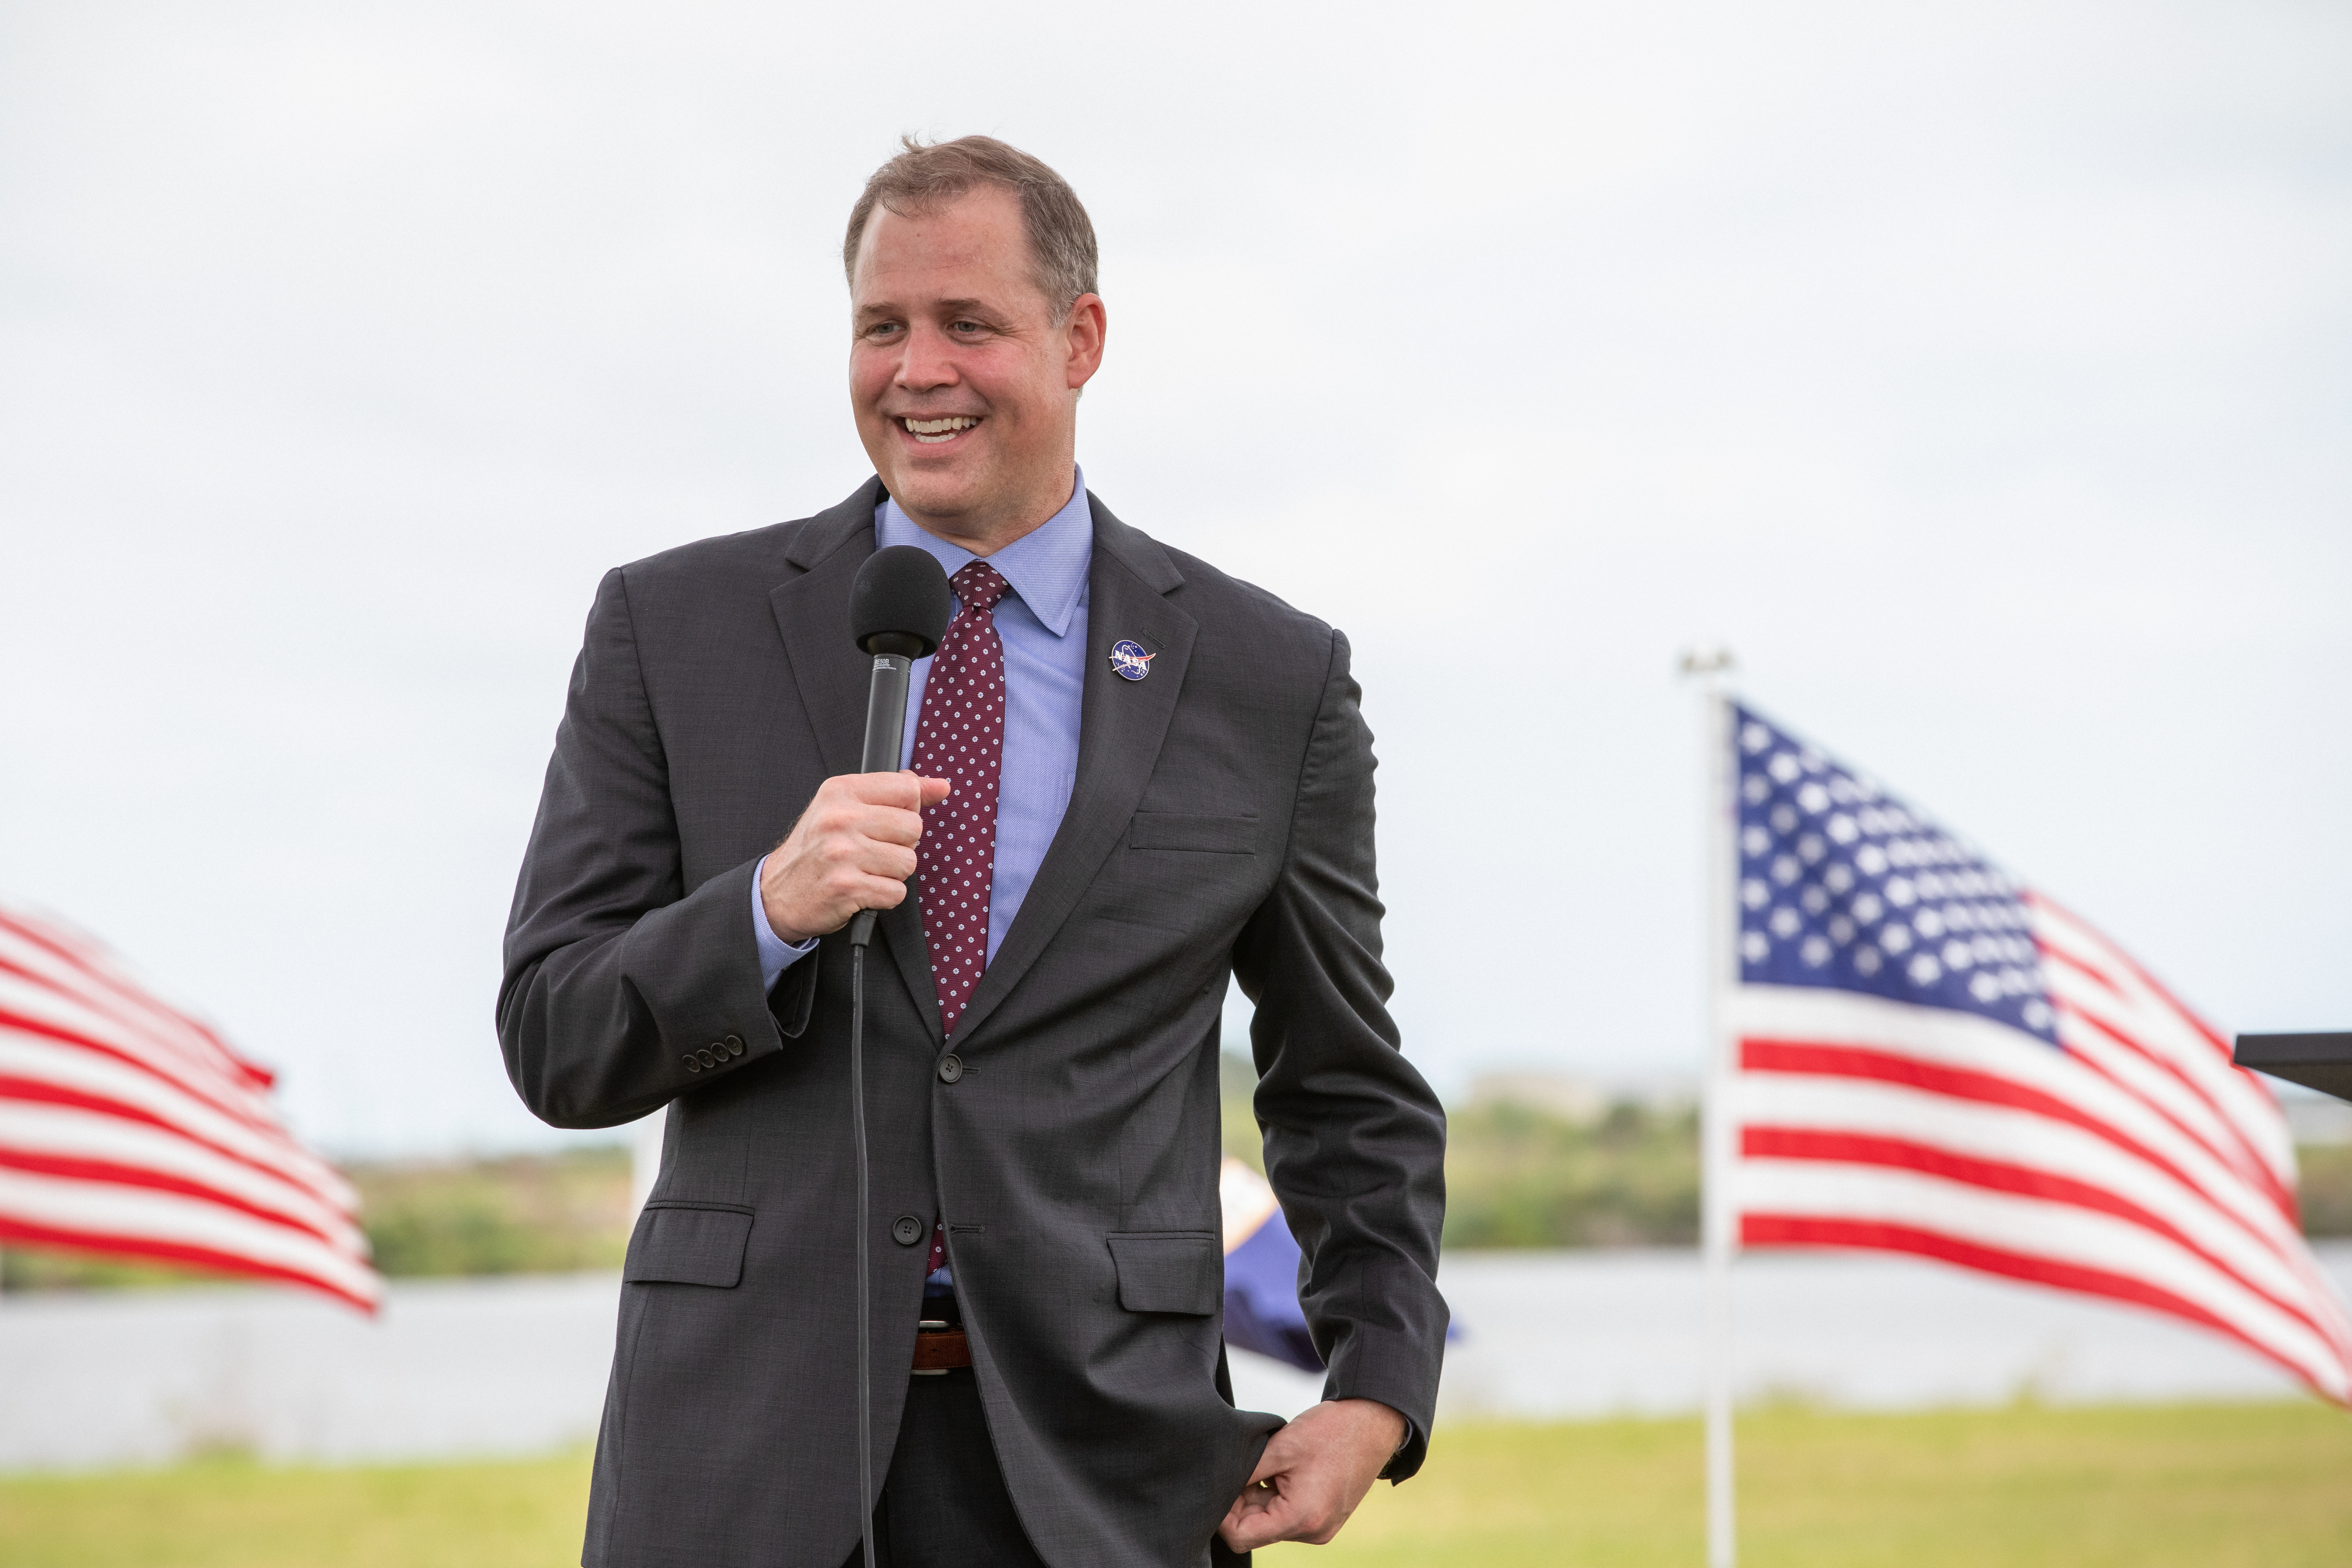 NASA Administrator Jim Bridenstine speaks to members of the media during a press briefing Nov. 13, 2020, near the Press Site countdown clock at the agency's Kennedy Space Center in Florida ahead of NASA's SpaceX Crew-1 launch.